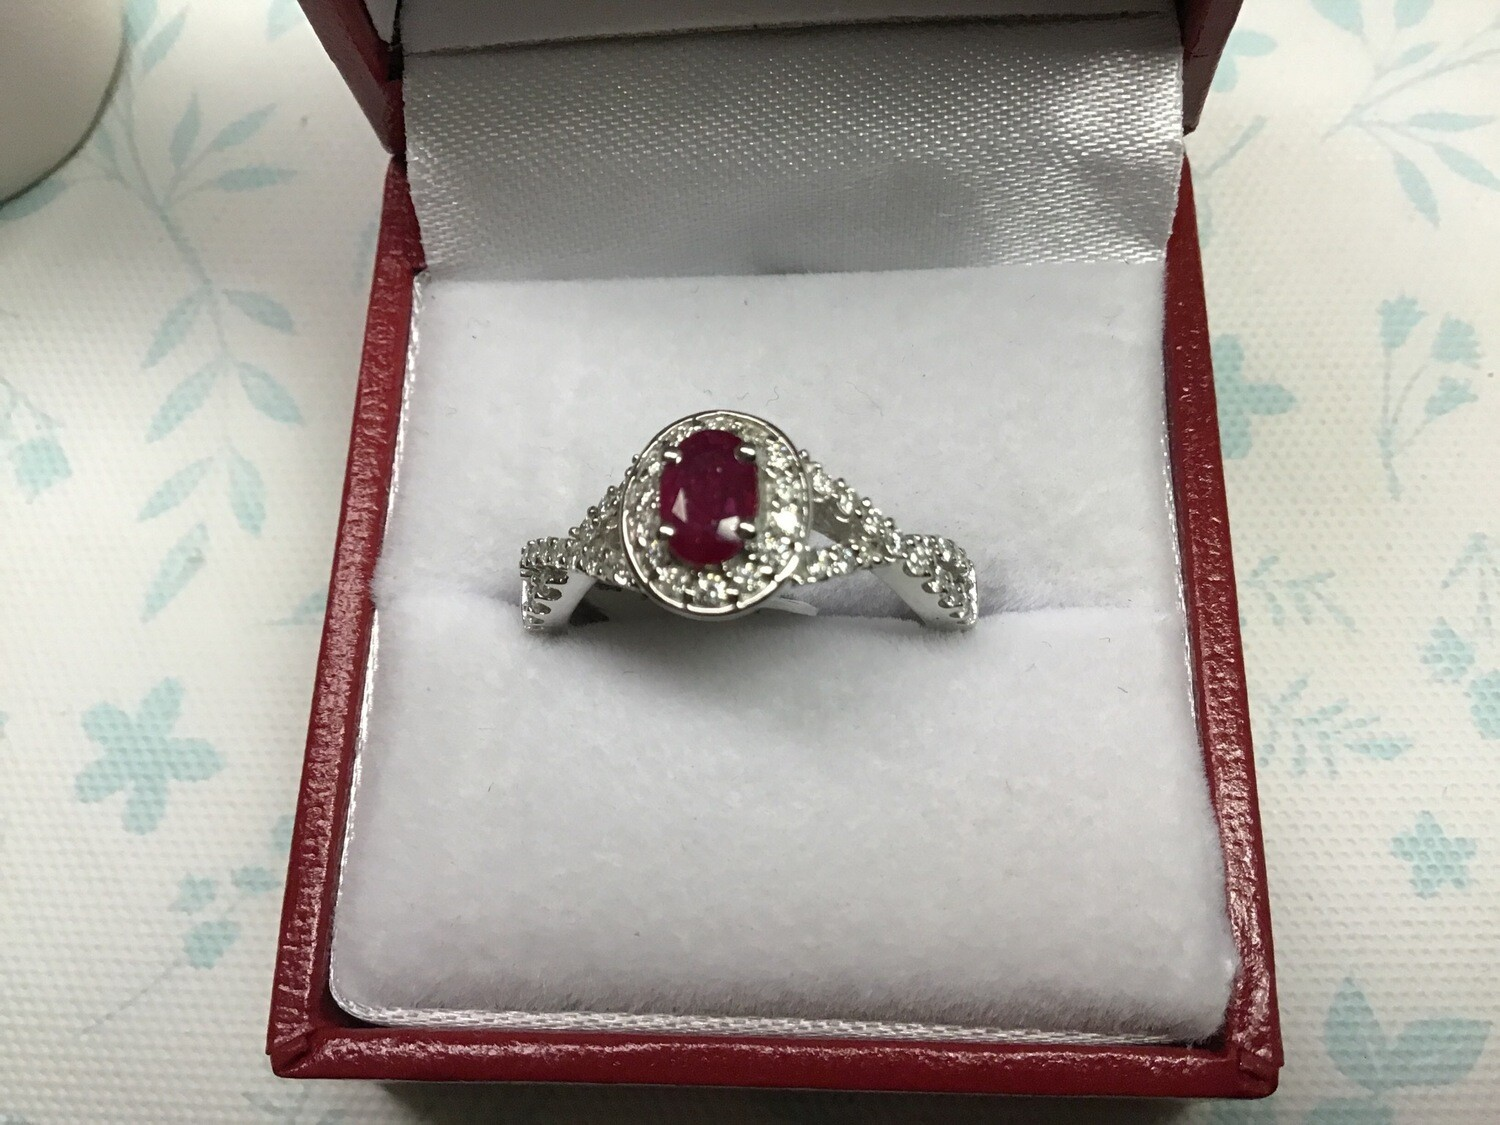 OVAL RUBY CRISSCROSS RING WITH DIAMONDS